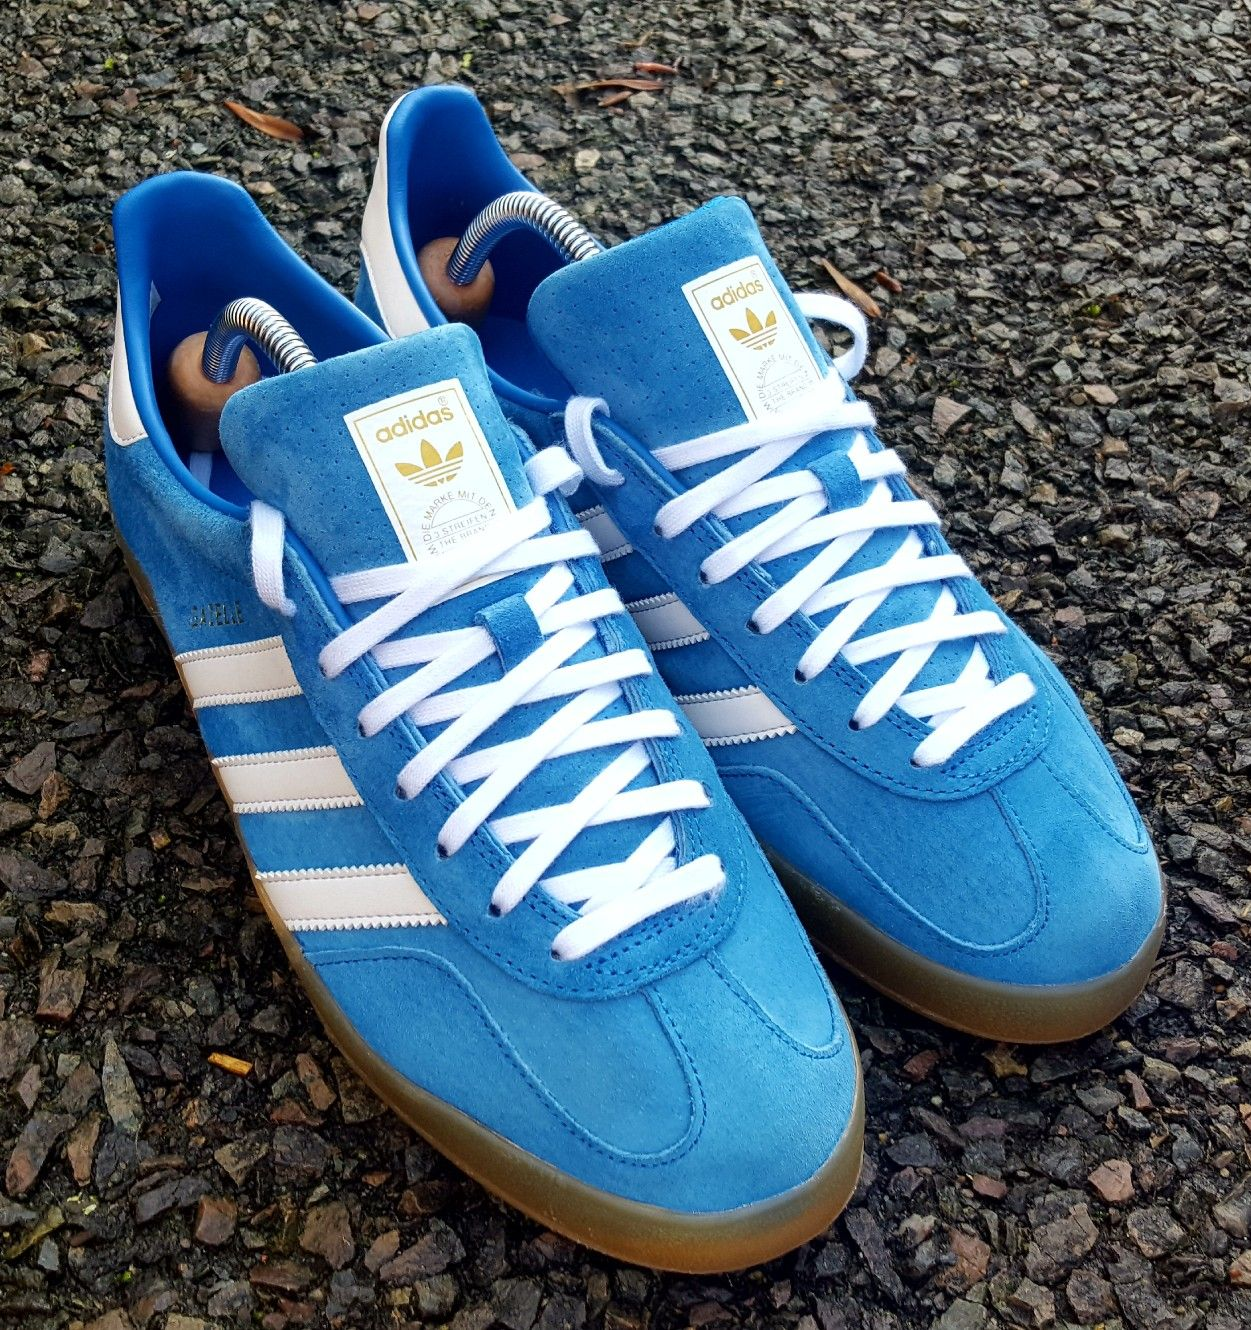 Adidas Originals Gazelle Indoor another pair for the